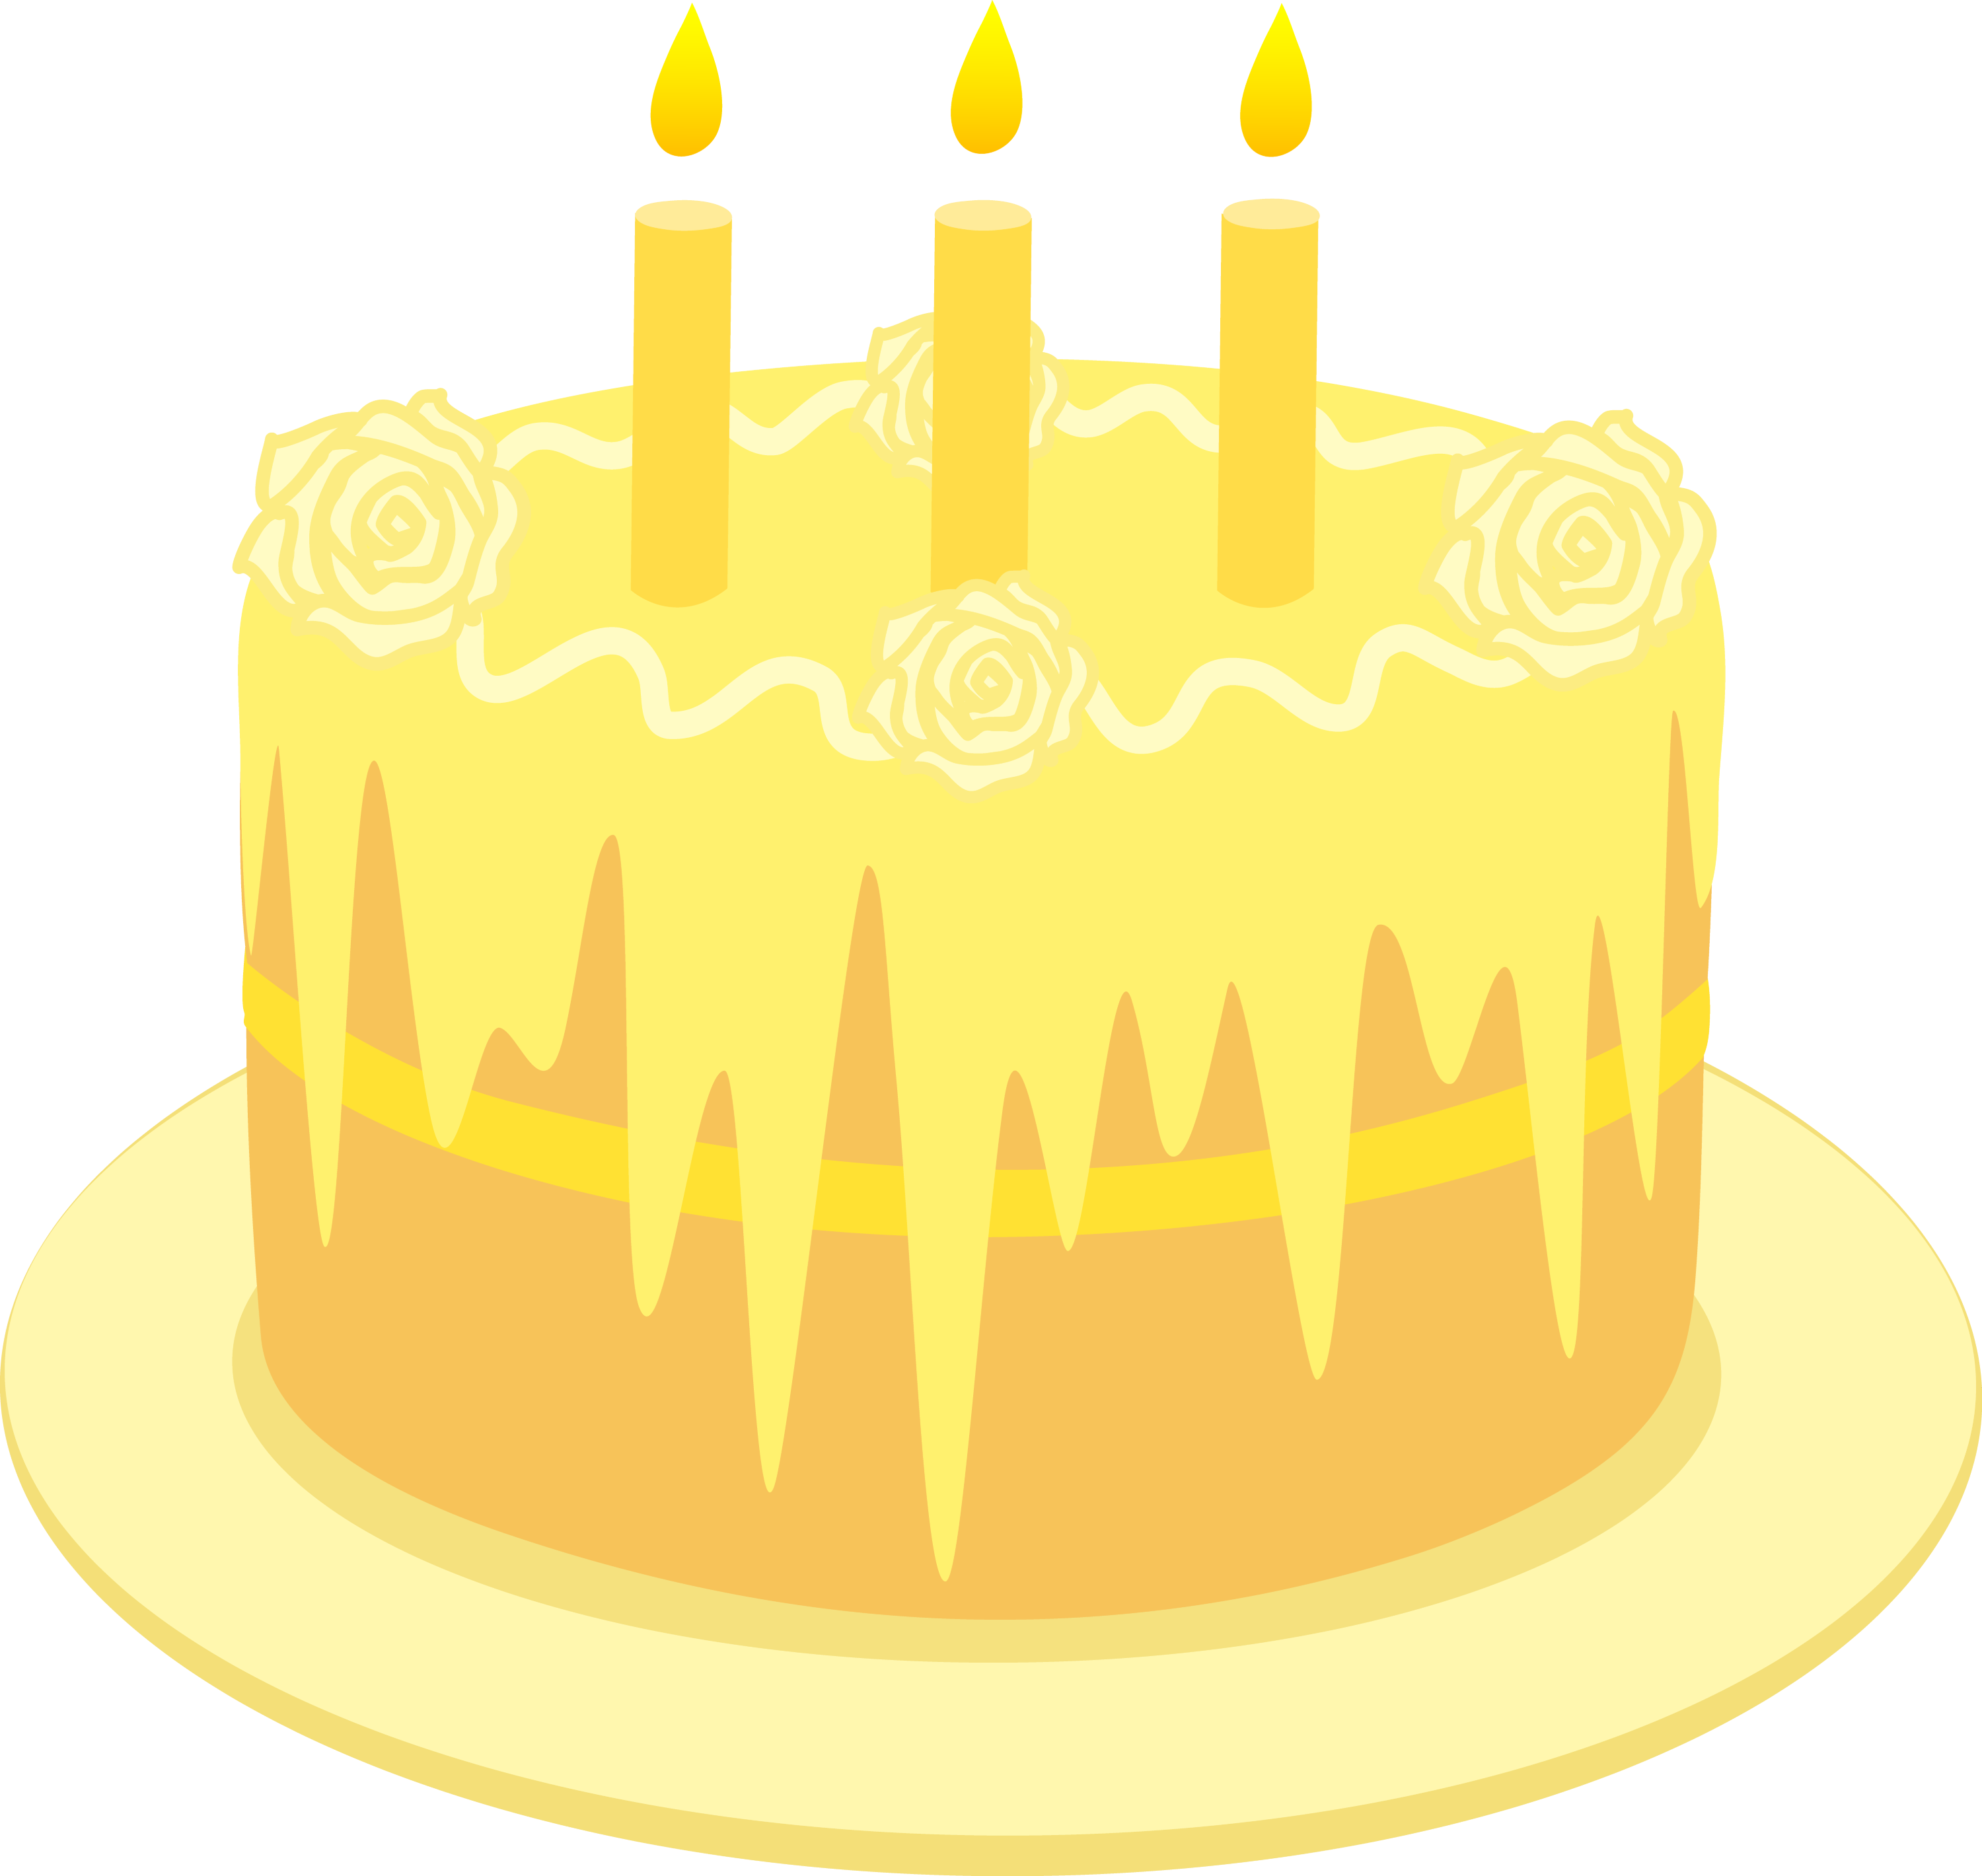 Lemon Birthday Cake With Candles - Free Clip Art